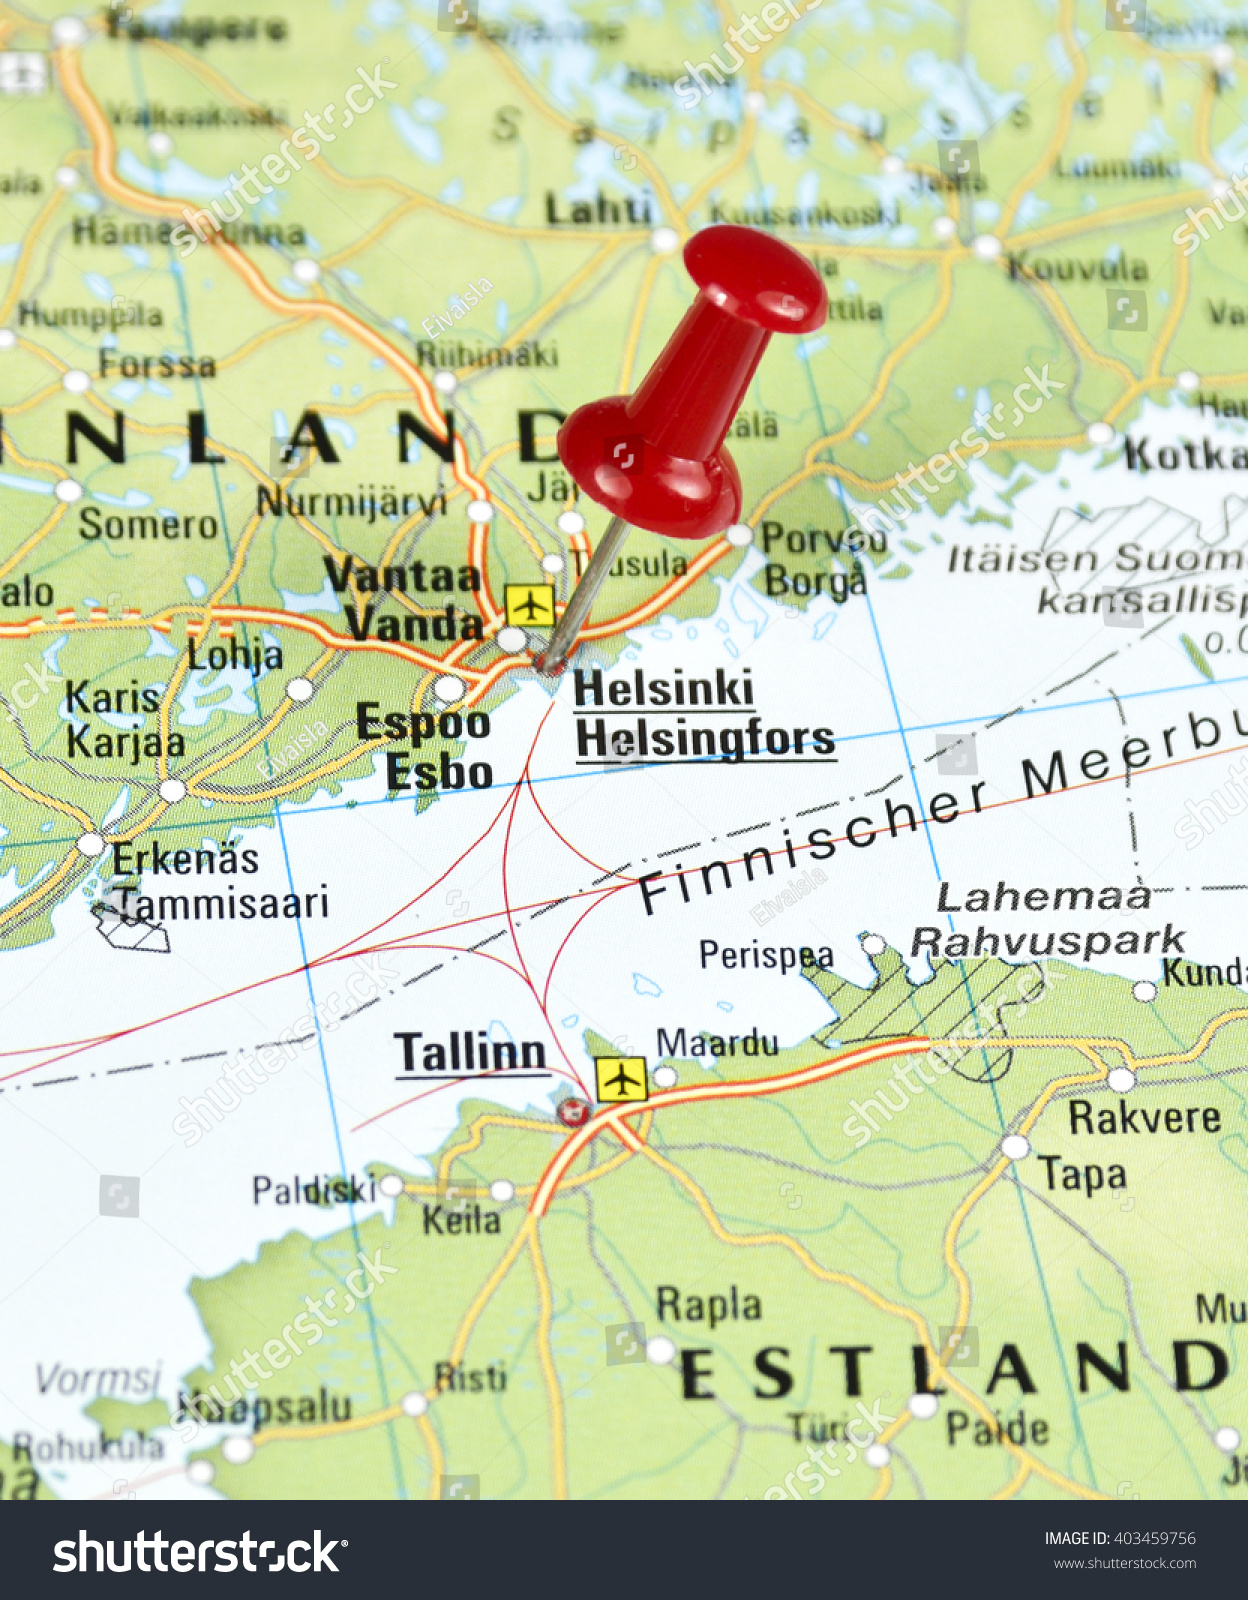 Map Finnland Pin Set On Helsinki Stock Photo 403459756 Shutterstock